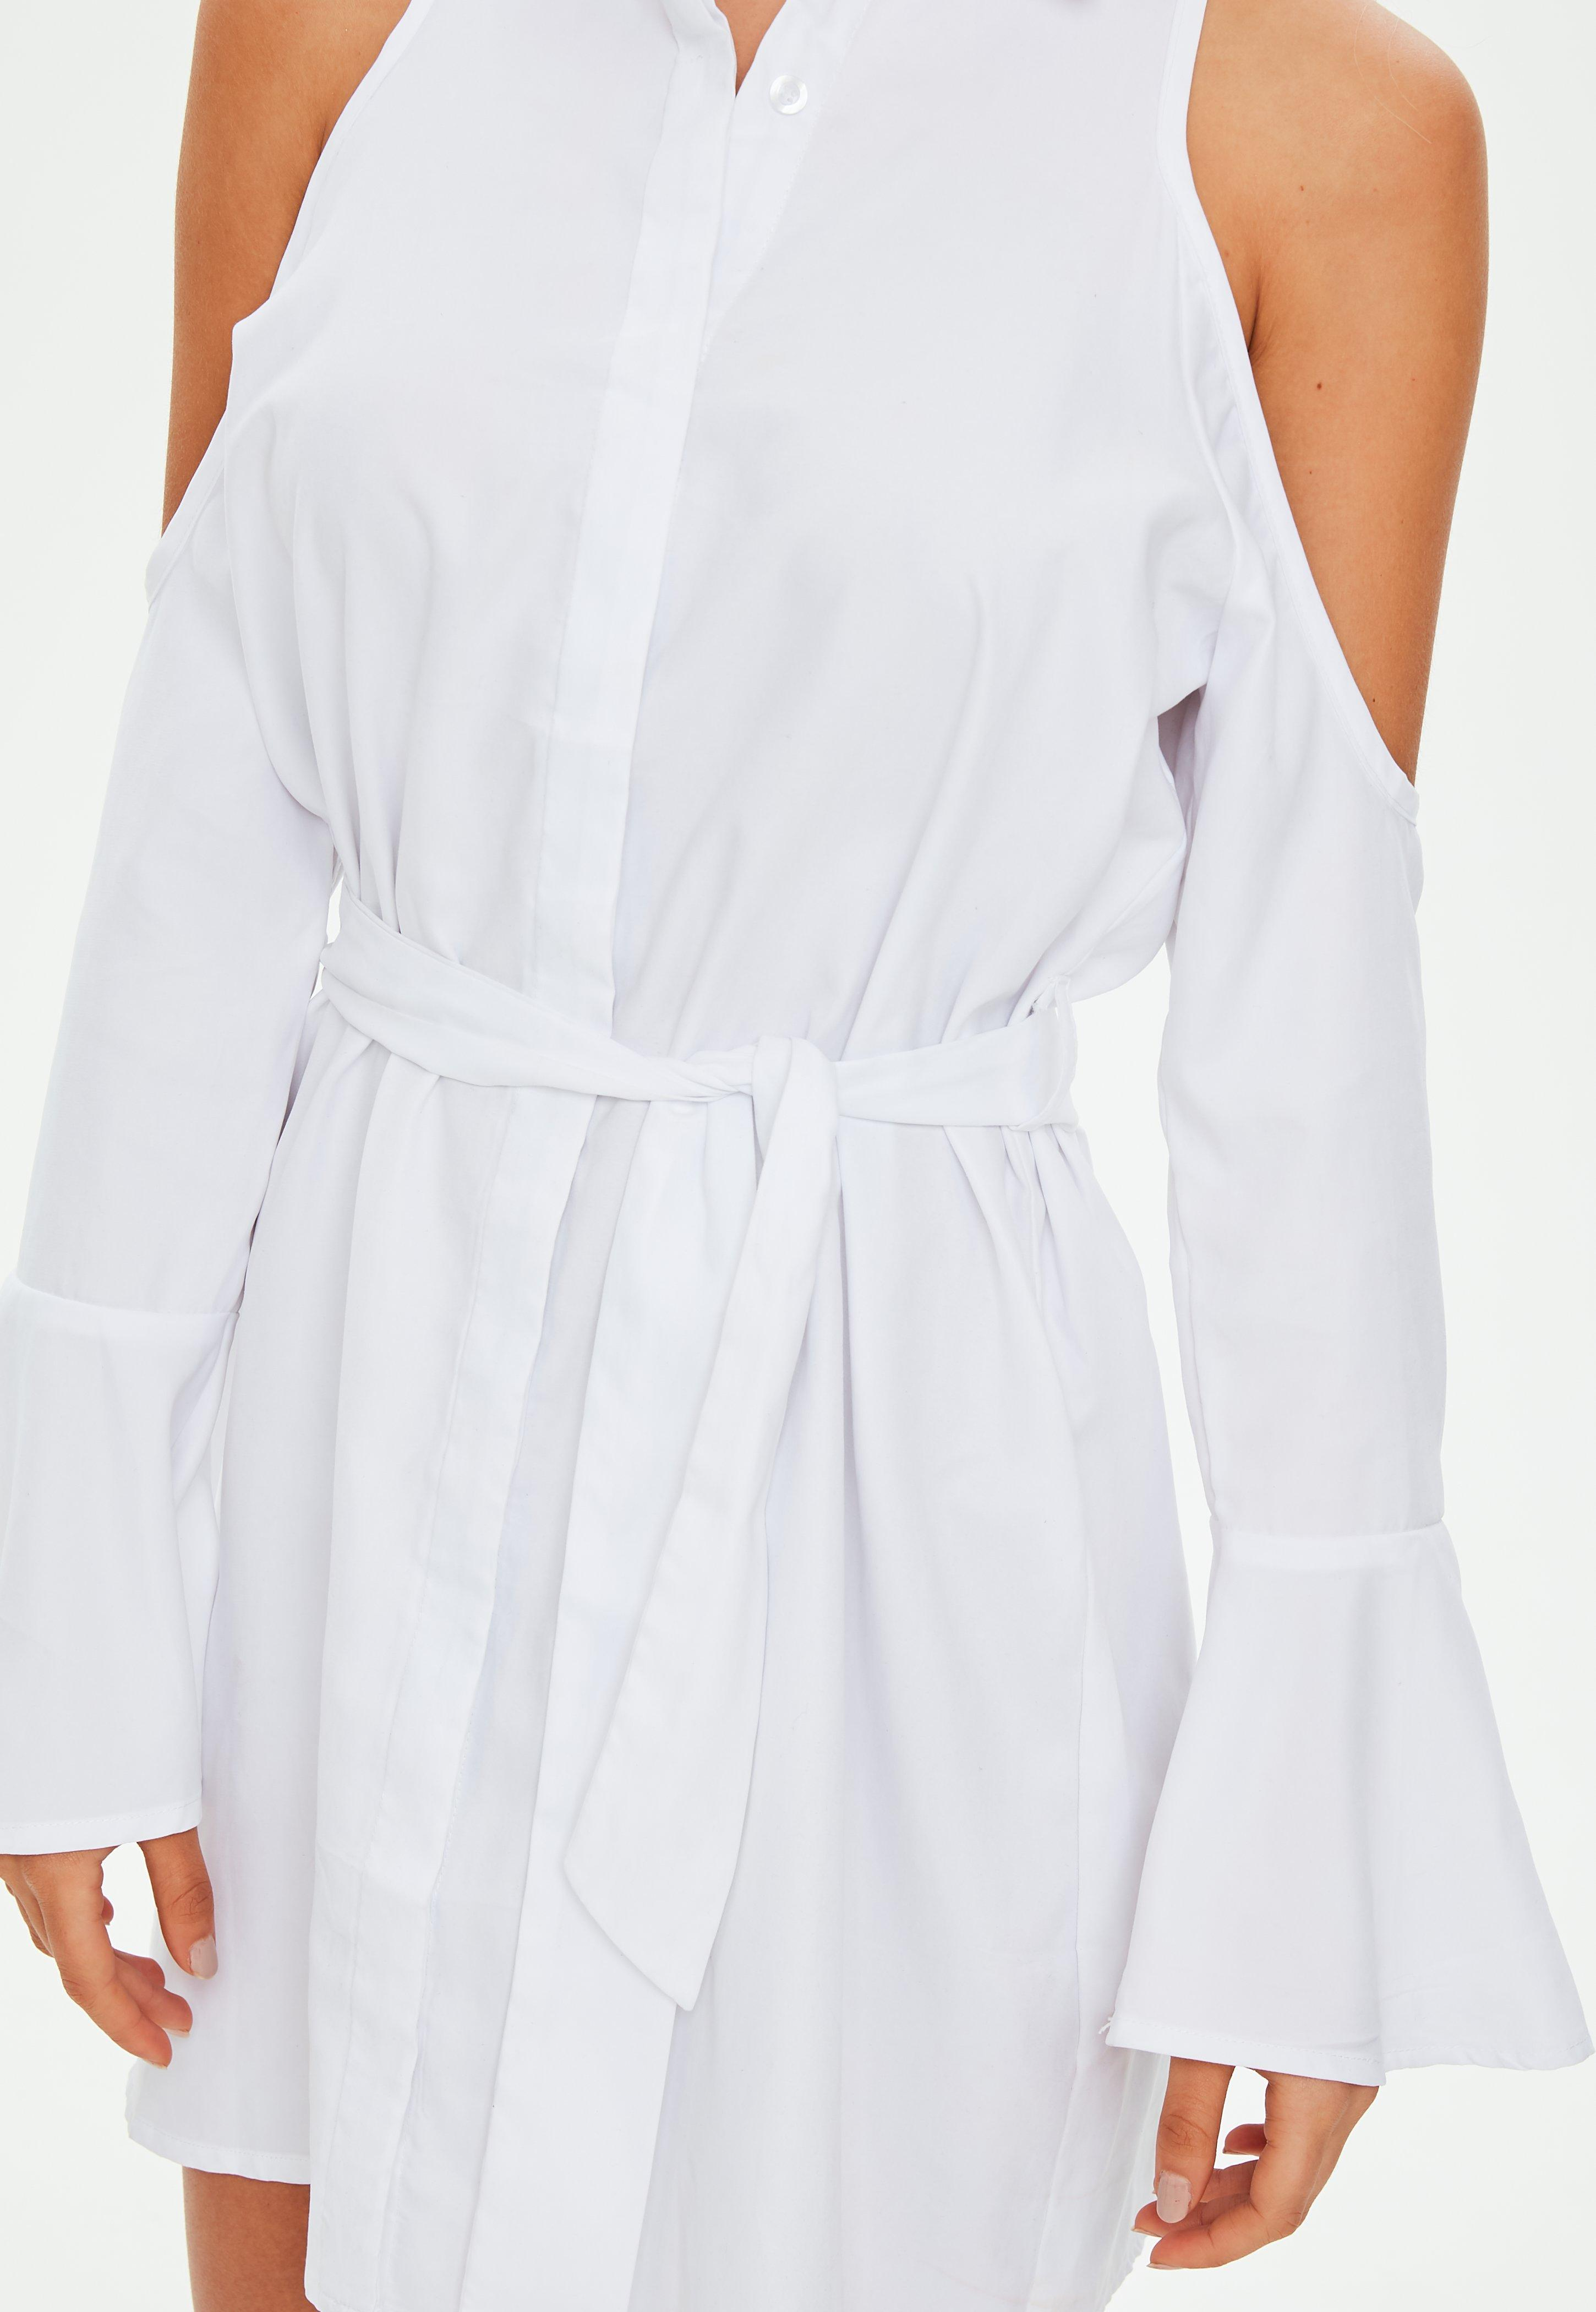 4e2b4046f42f5b Lyst - Missguided White Soft Touch Cold Shoulder Tie Shirt Dress in ...